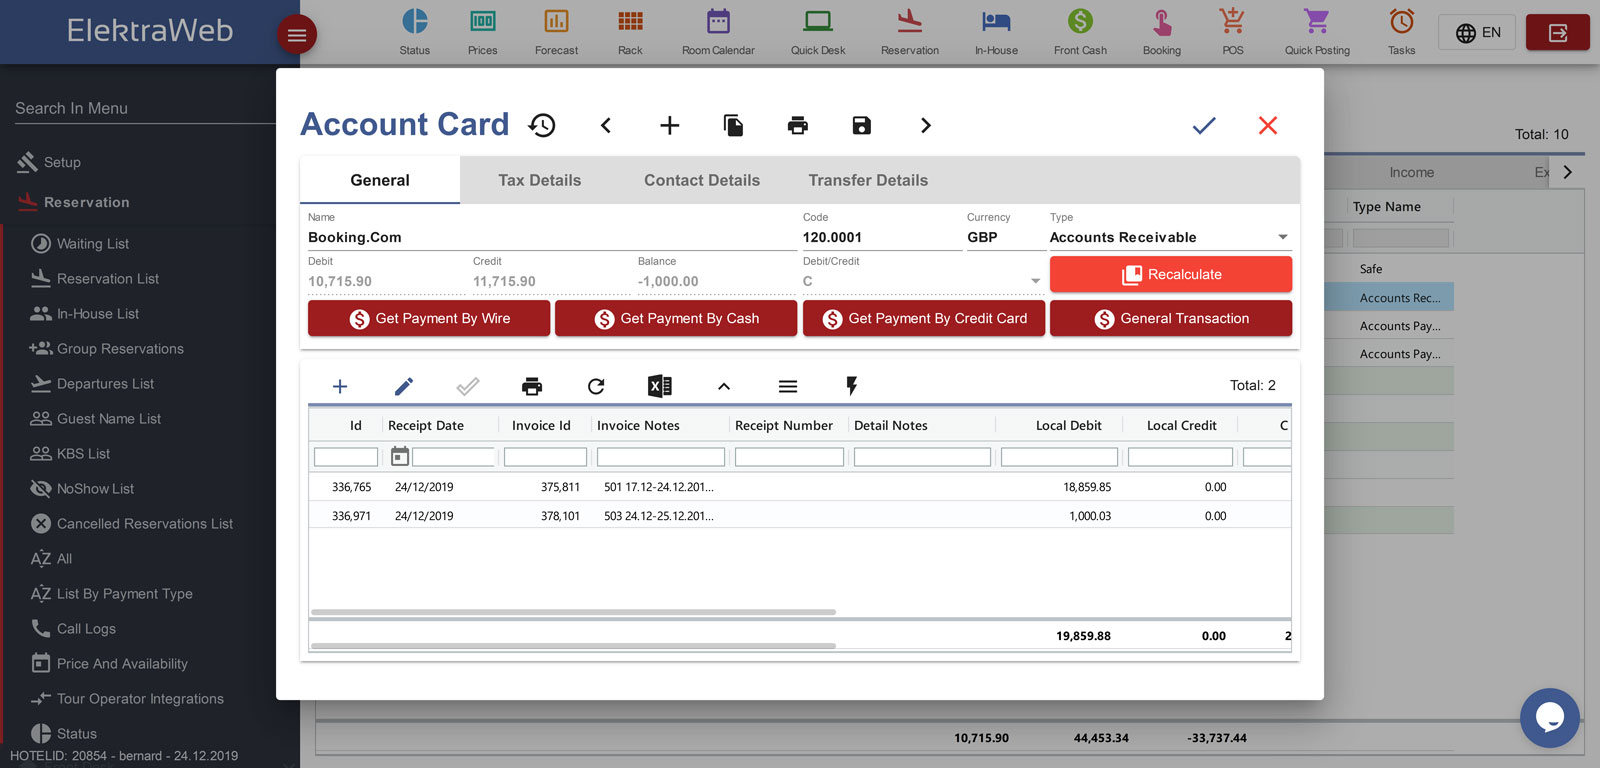 Hotel Program Fully-Featured PMS-Elektraweb Hotel Management System Invoice Accounts Cards